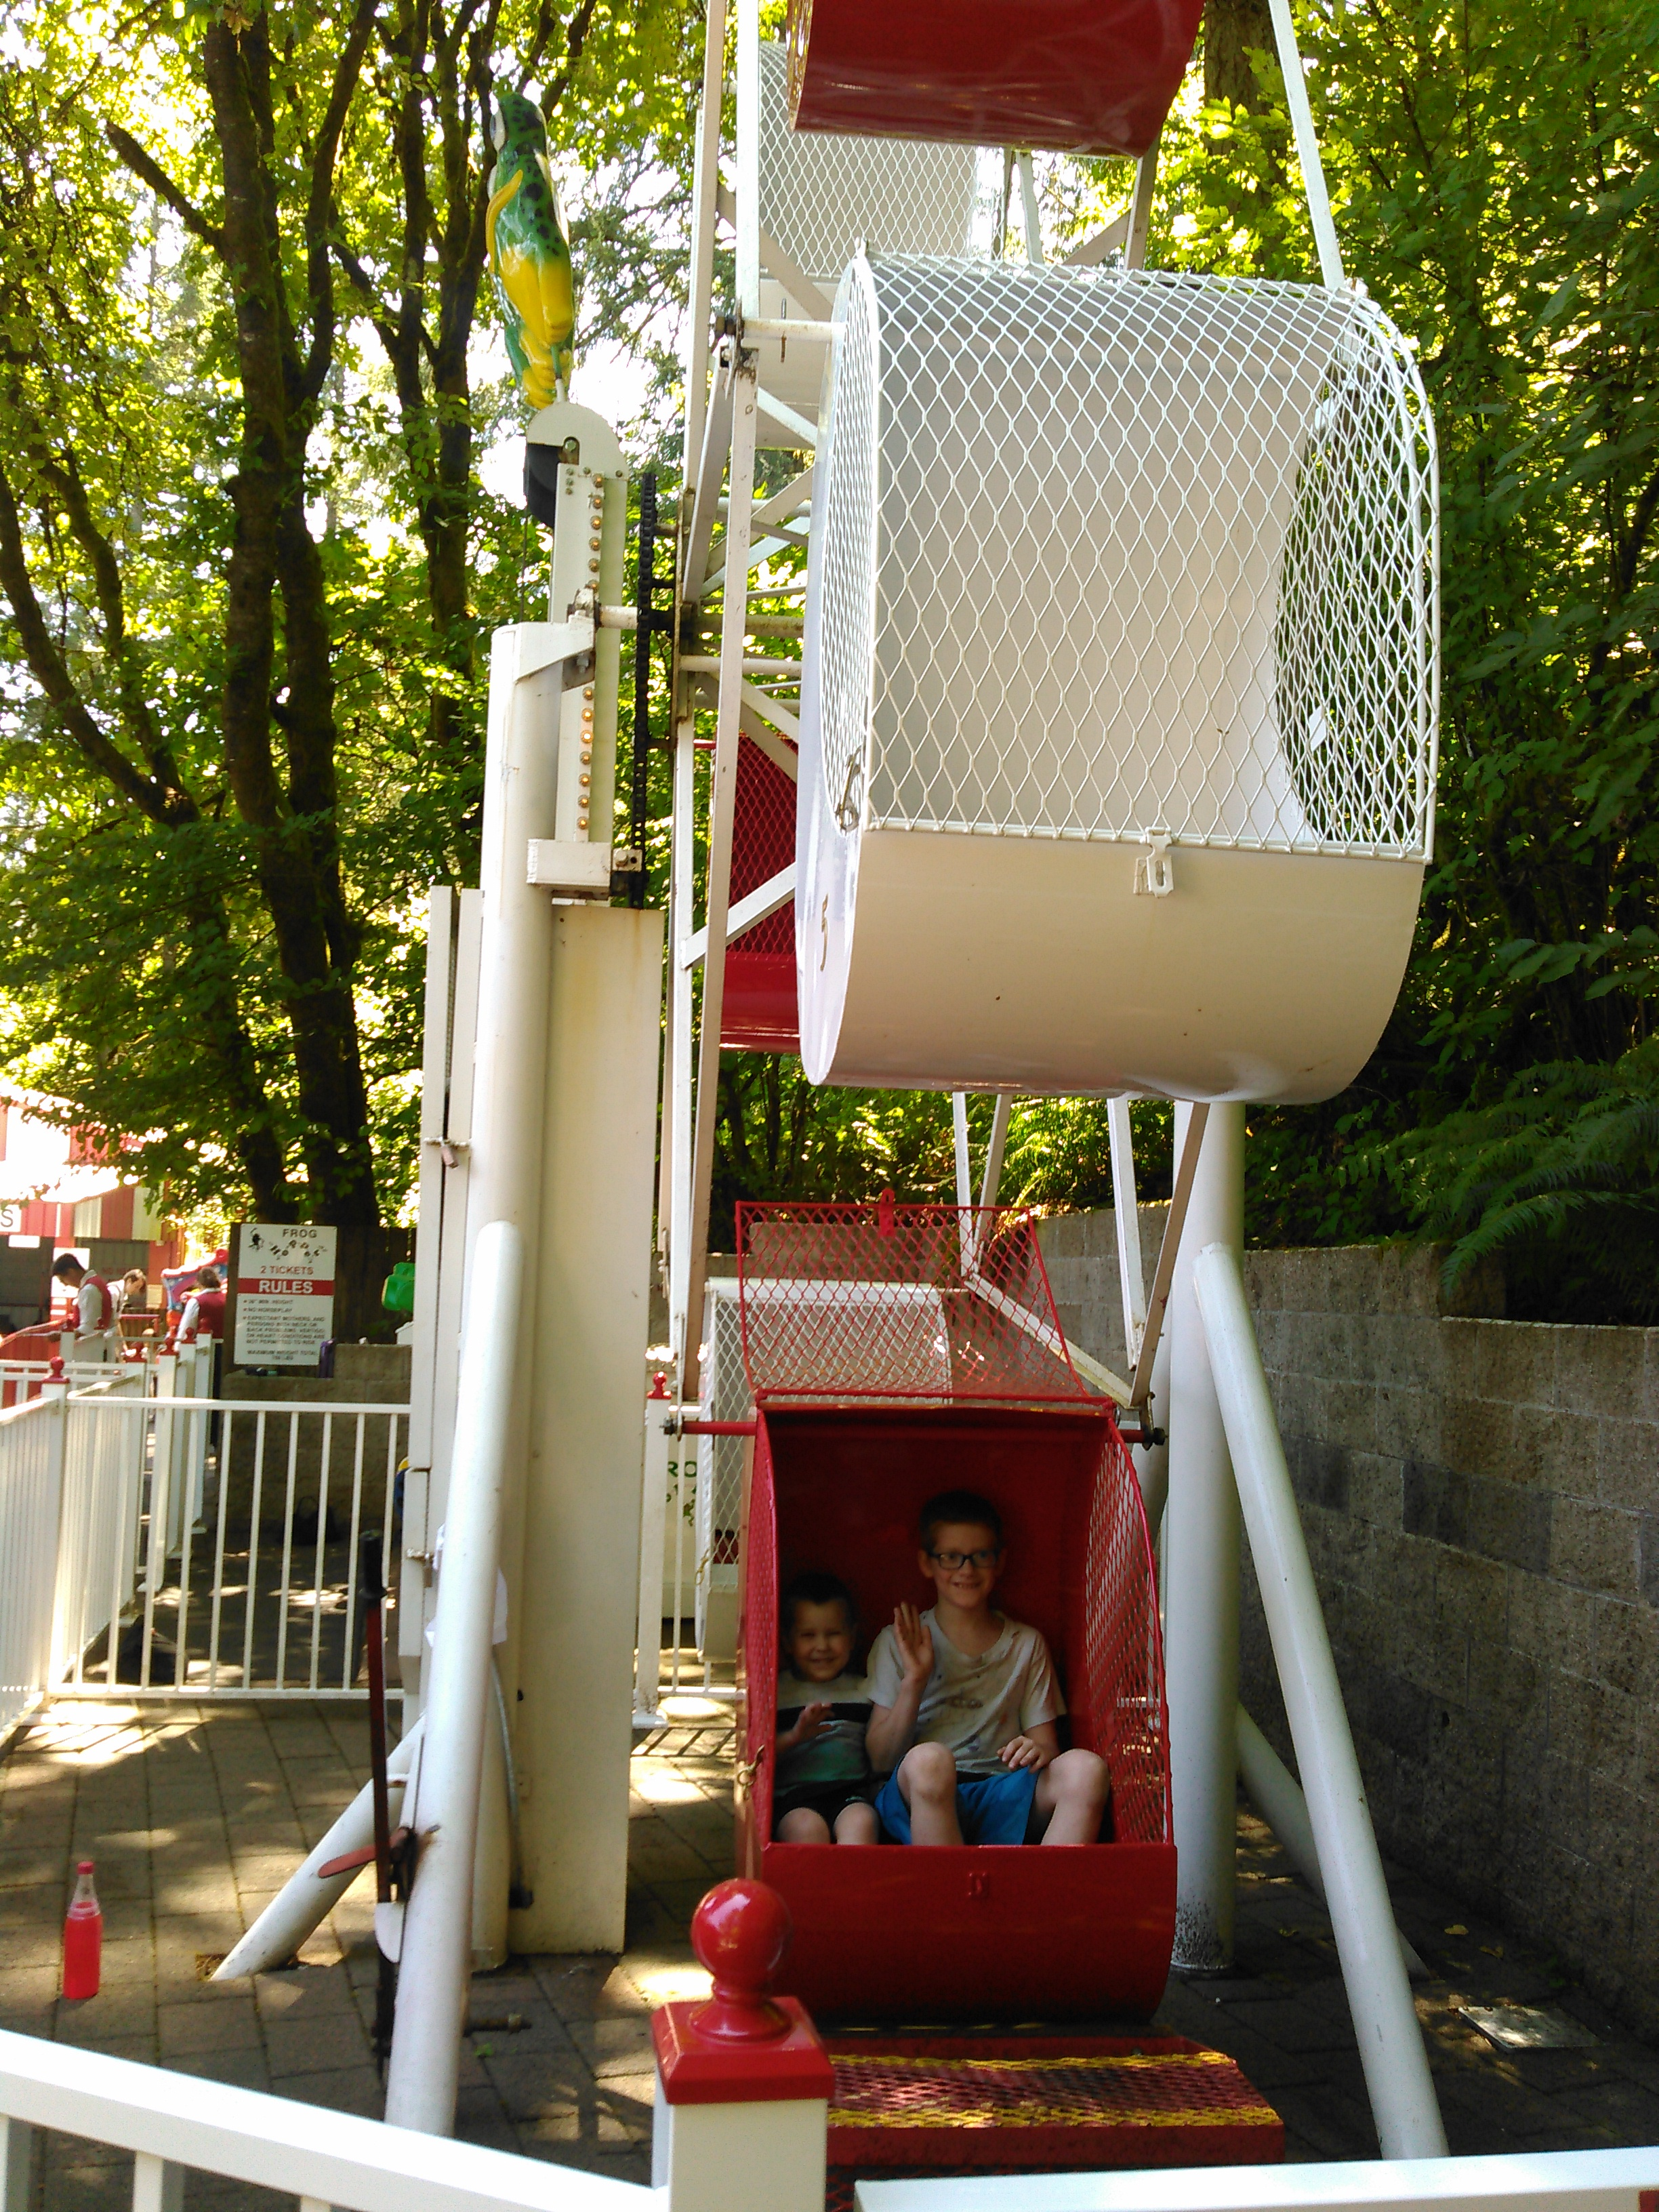 Small Fry and Munchkin on the kiddie Ferris wheel.